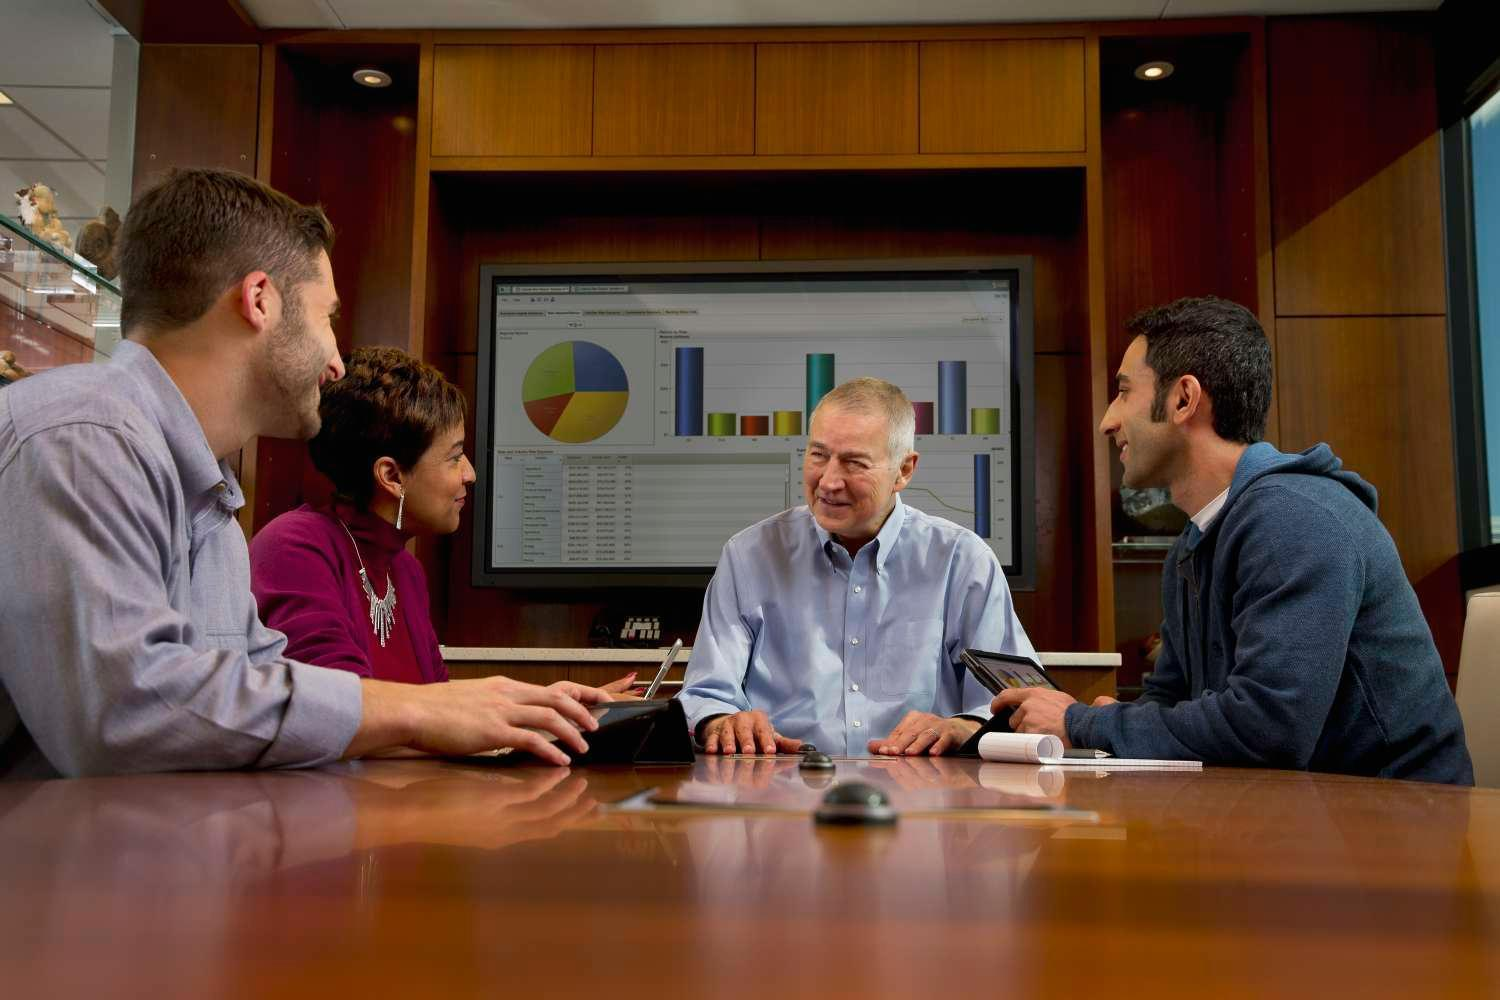 Jim Goodnight at a conference table talking to employees